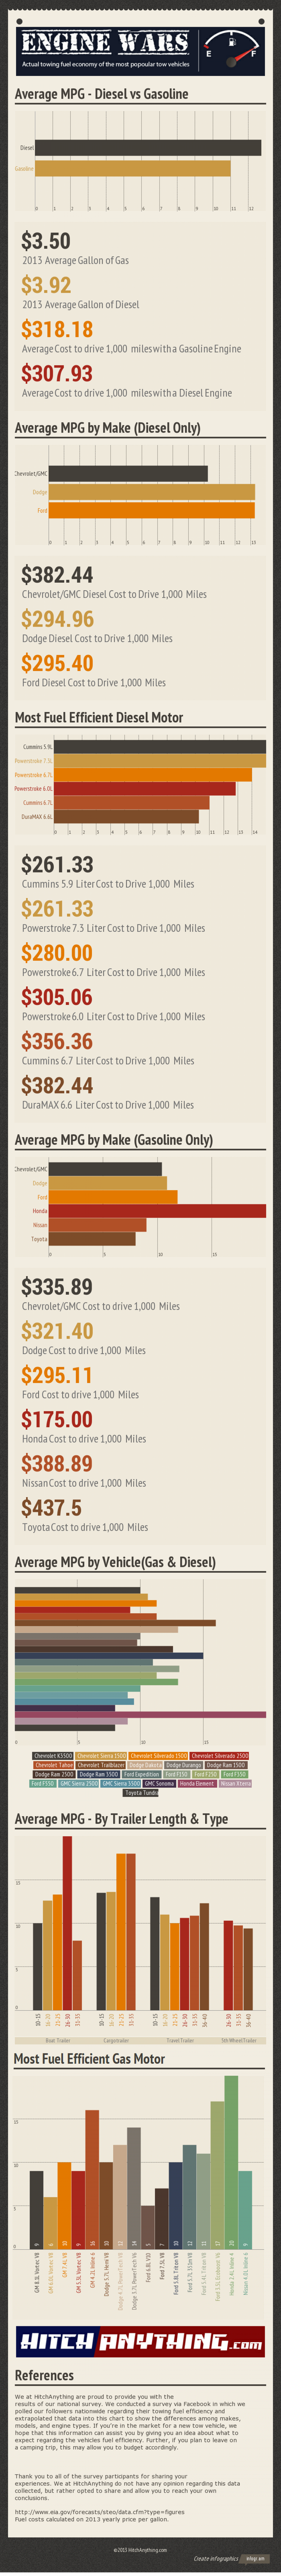 Engine War: Towing Fuel Economy MPG Infographic